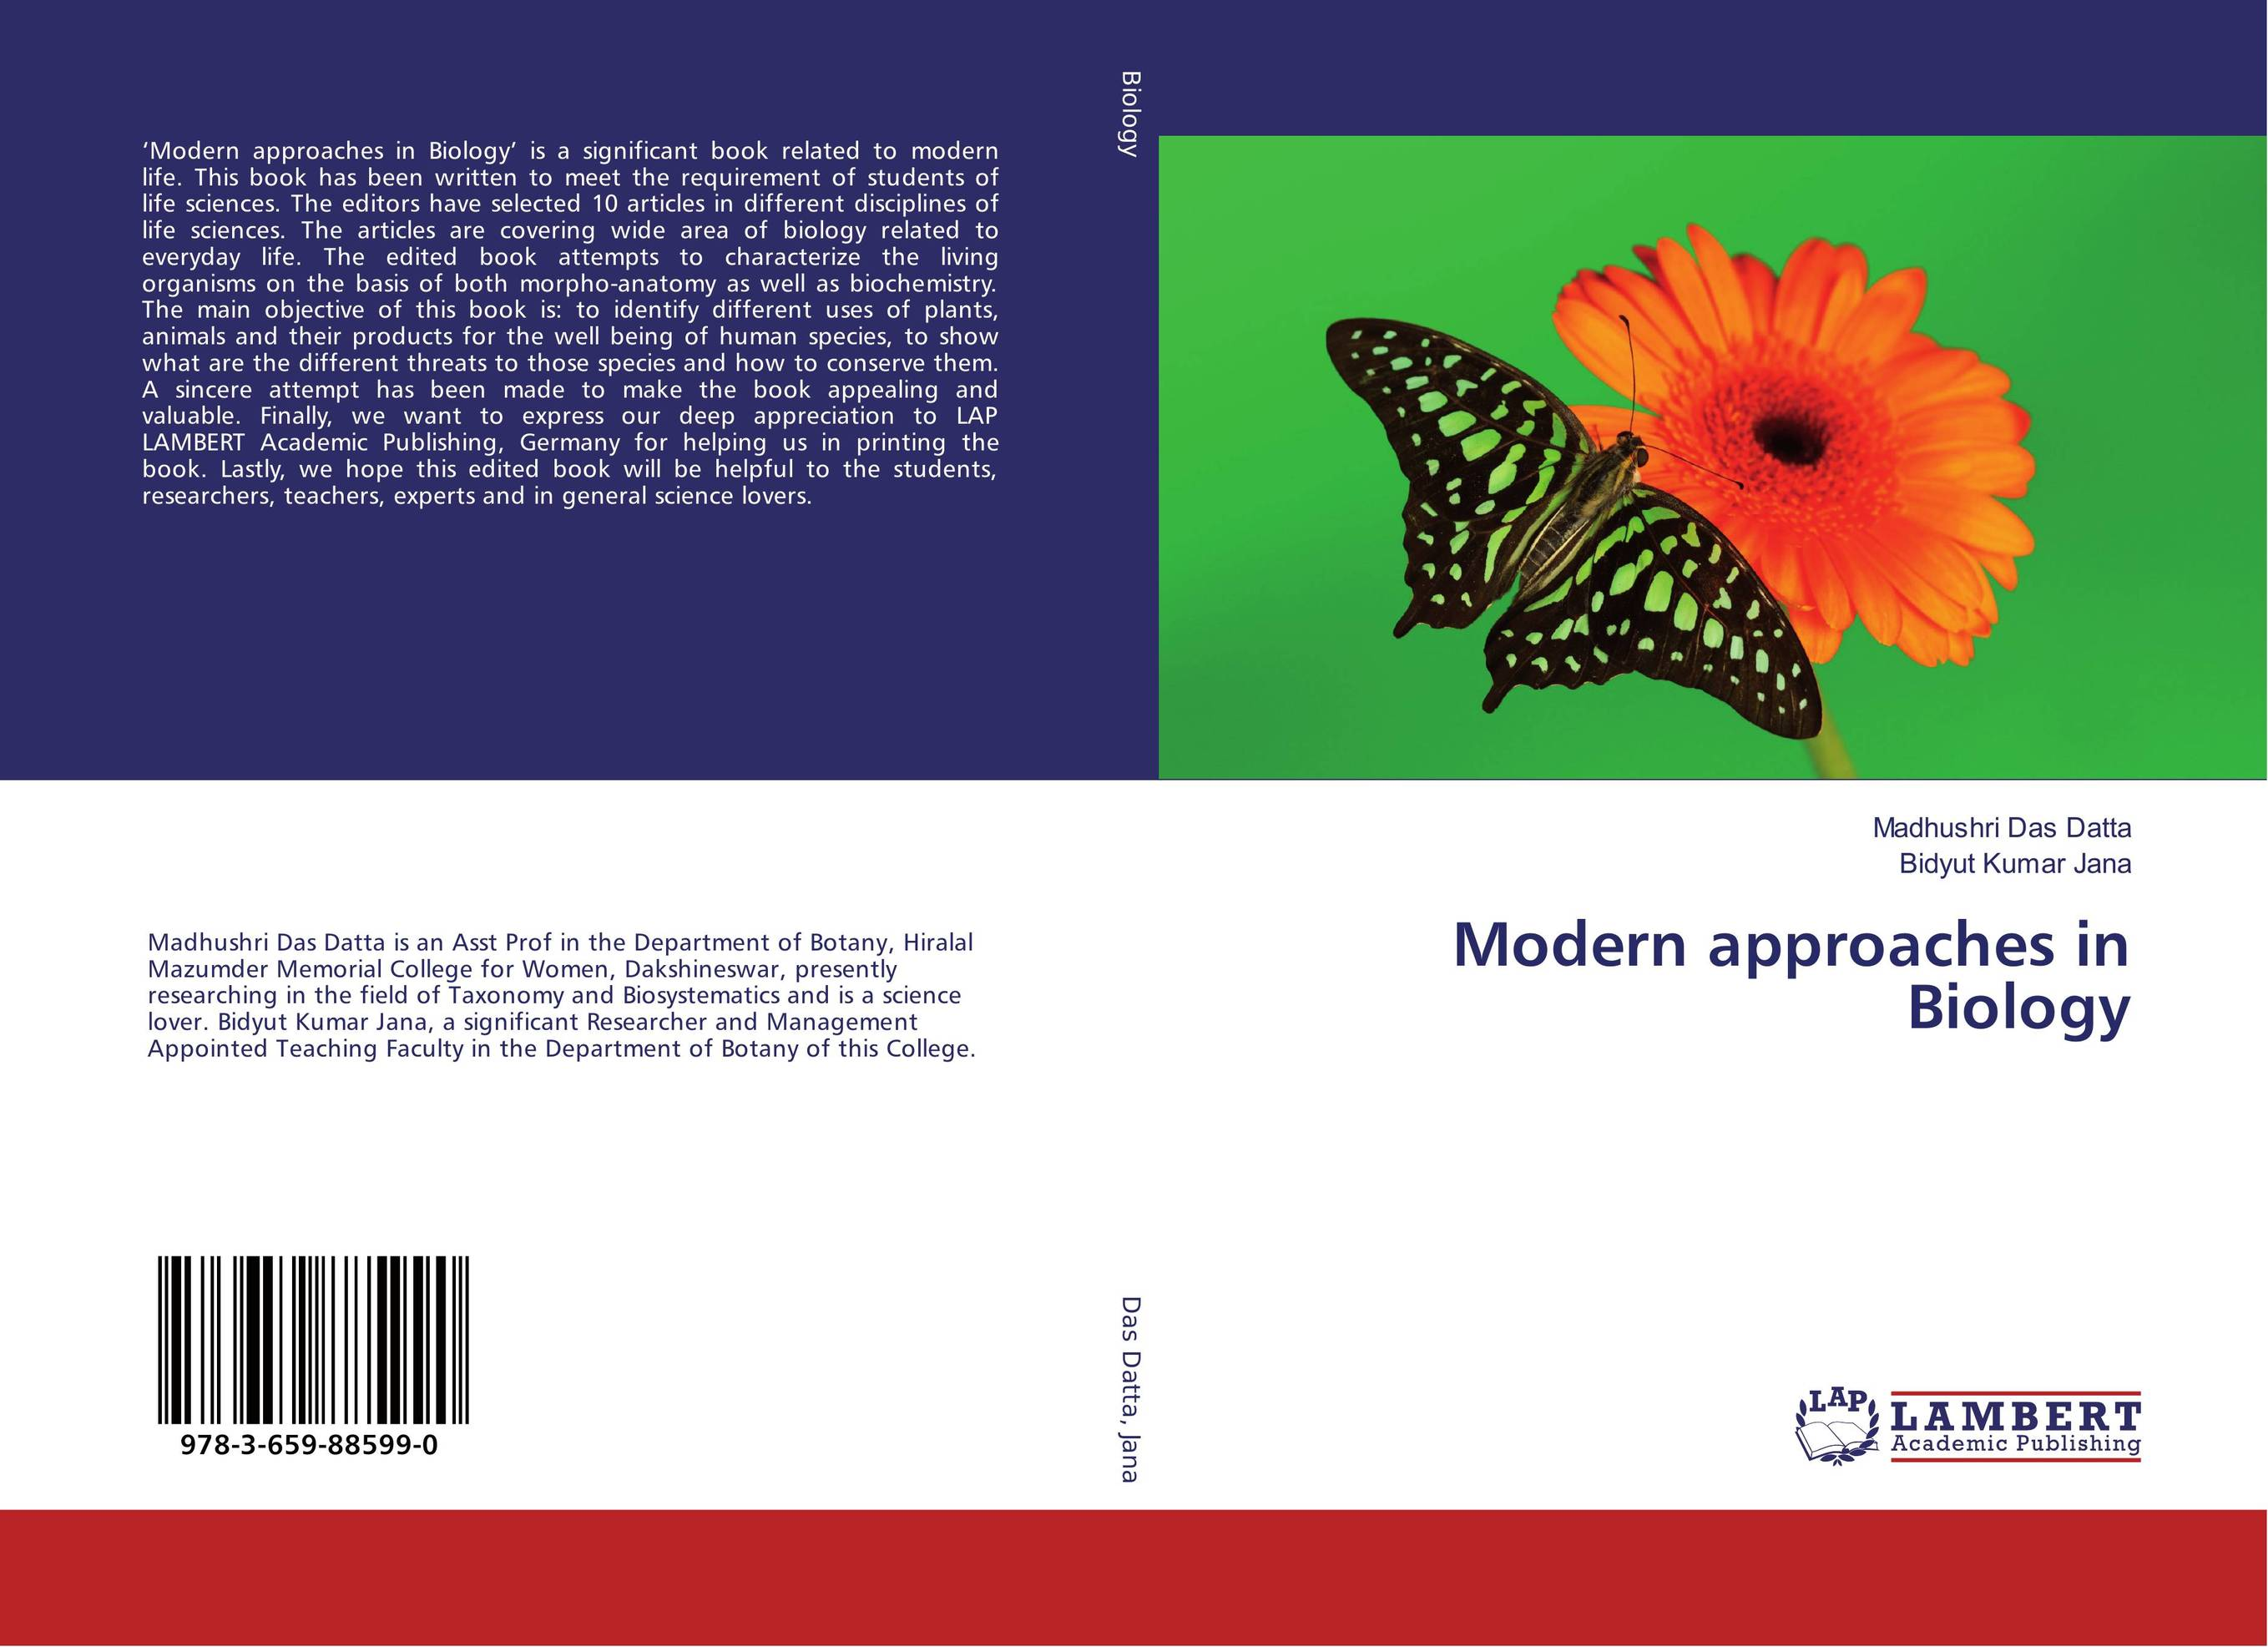 Modern approaches in Biology bruno latour we have never been modern ois